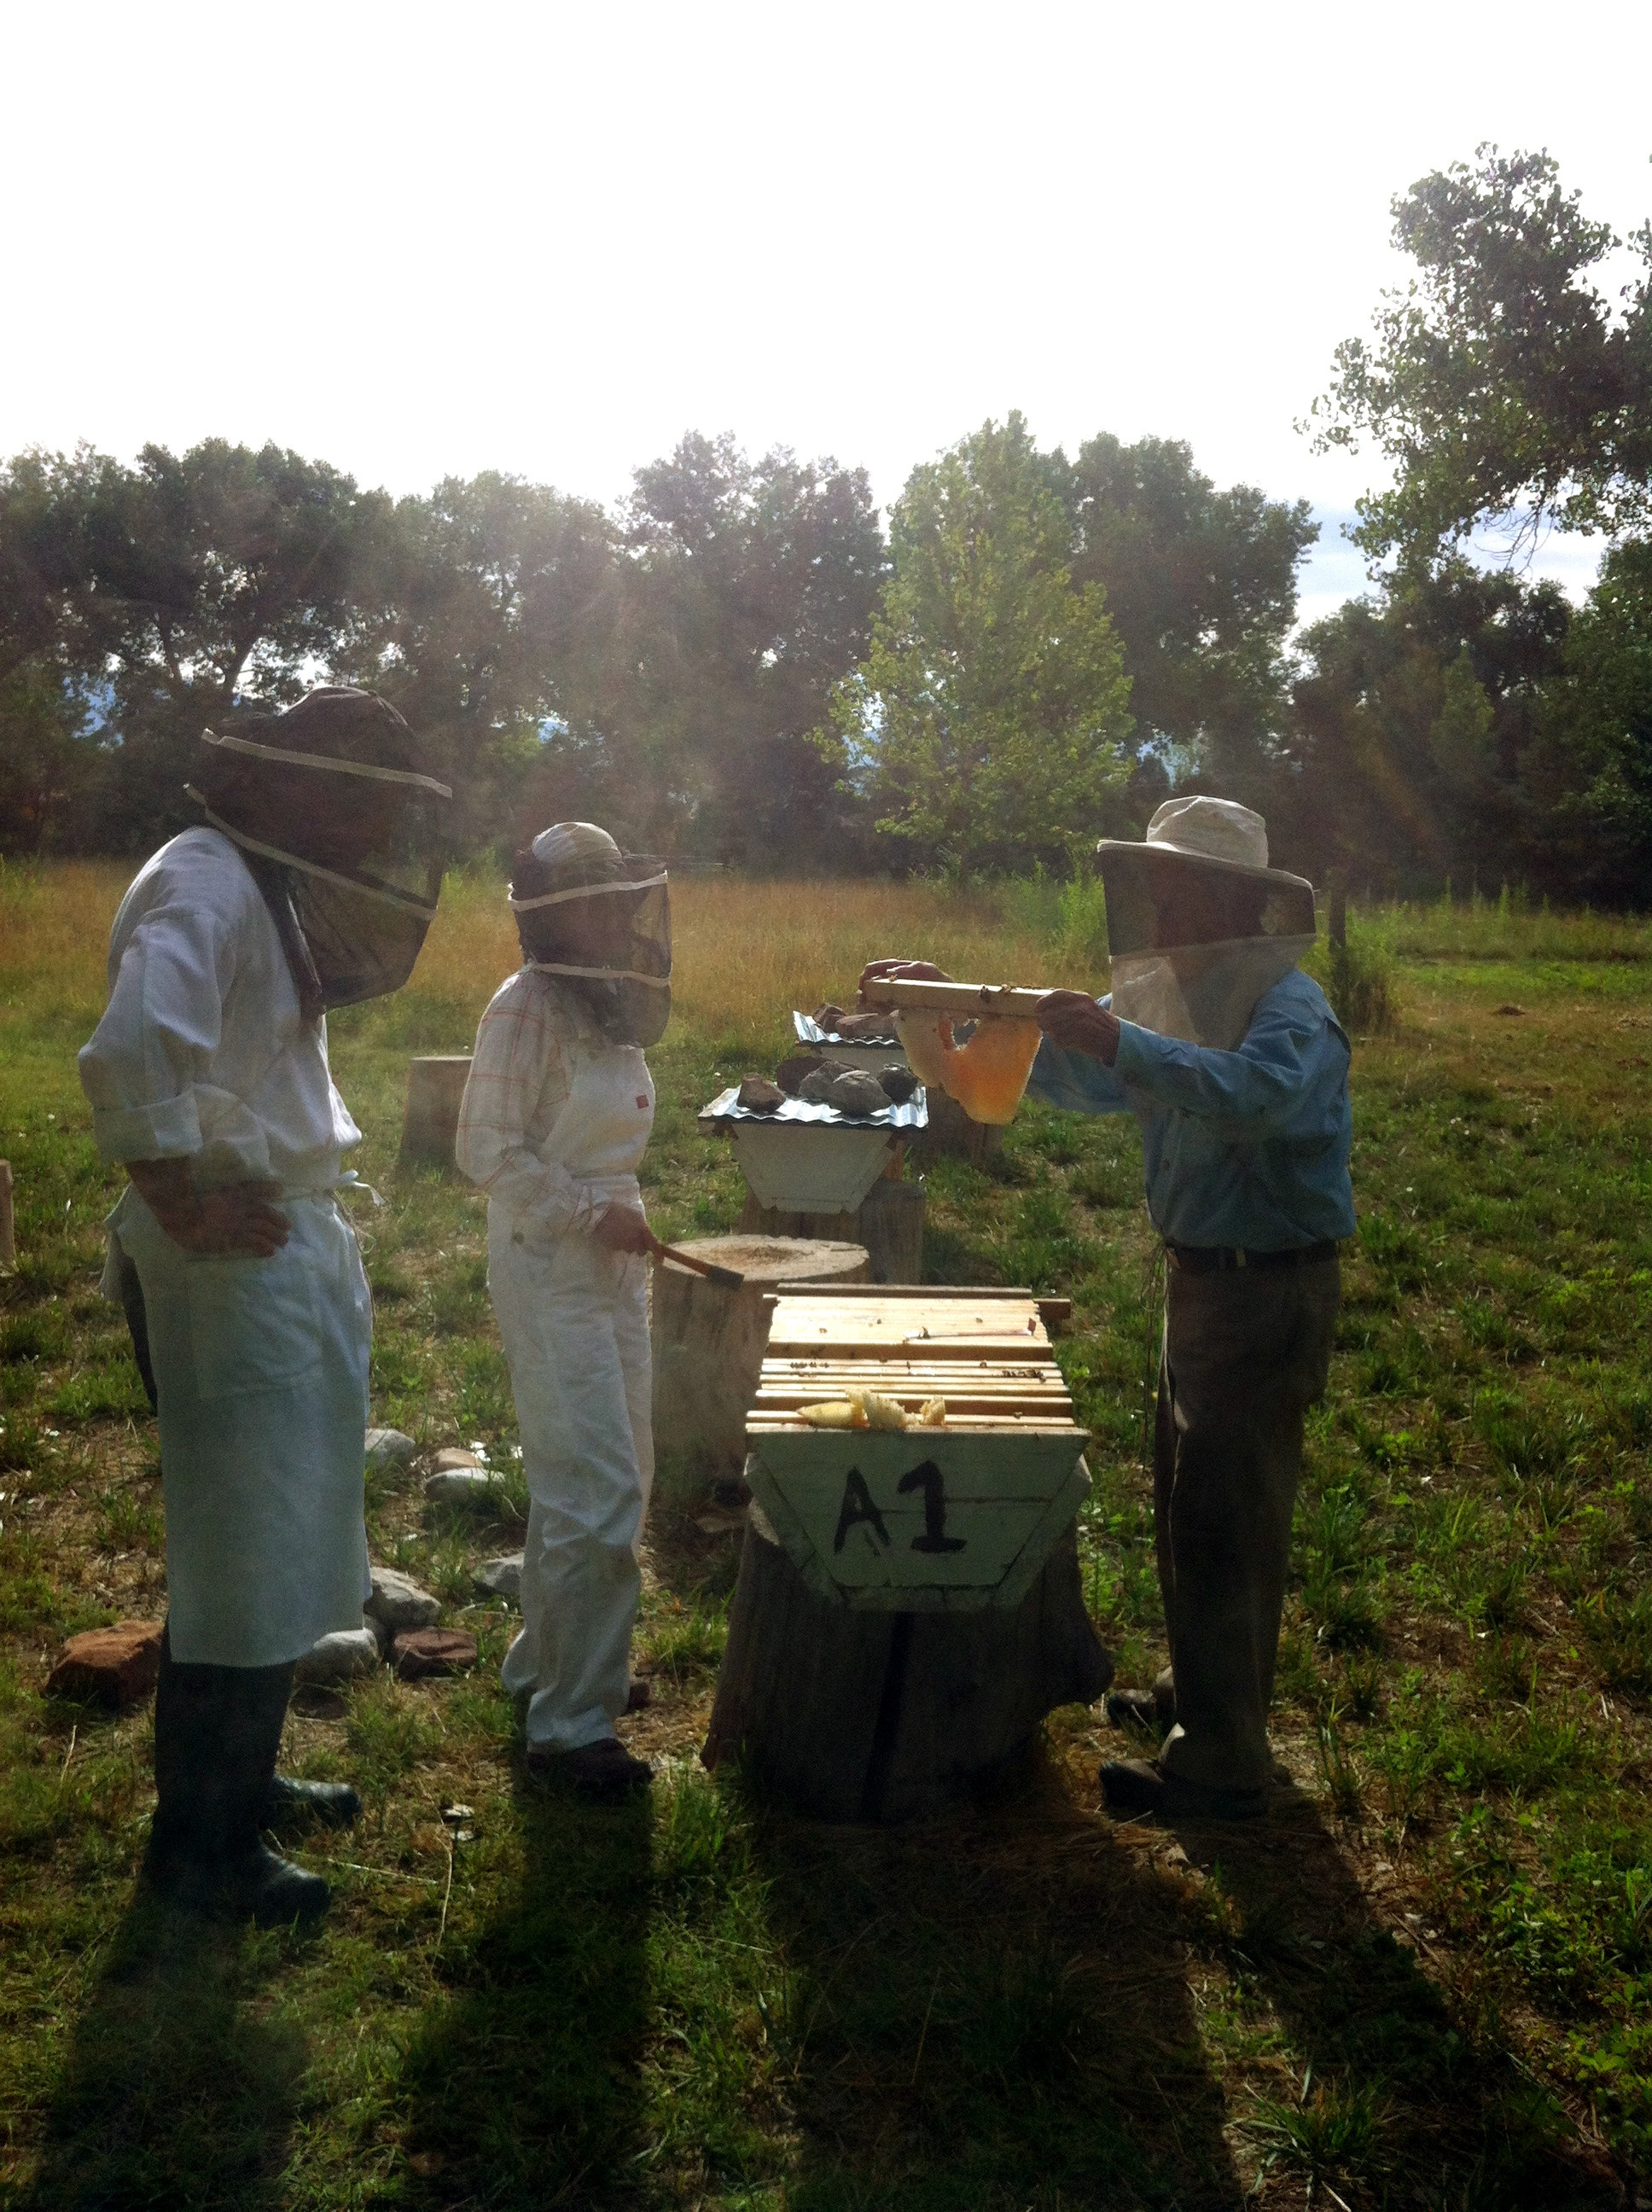 Armin Rembe started keeping bees about ten years ago, after he planted the first lavender fields. Armin says that the hives have a healthy yield because the farm is organic and there are no pesticides used on the property.